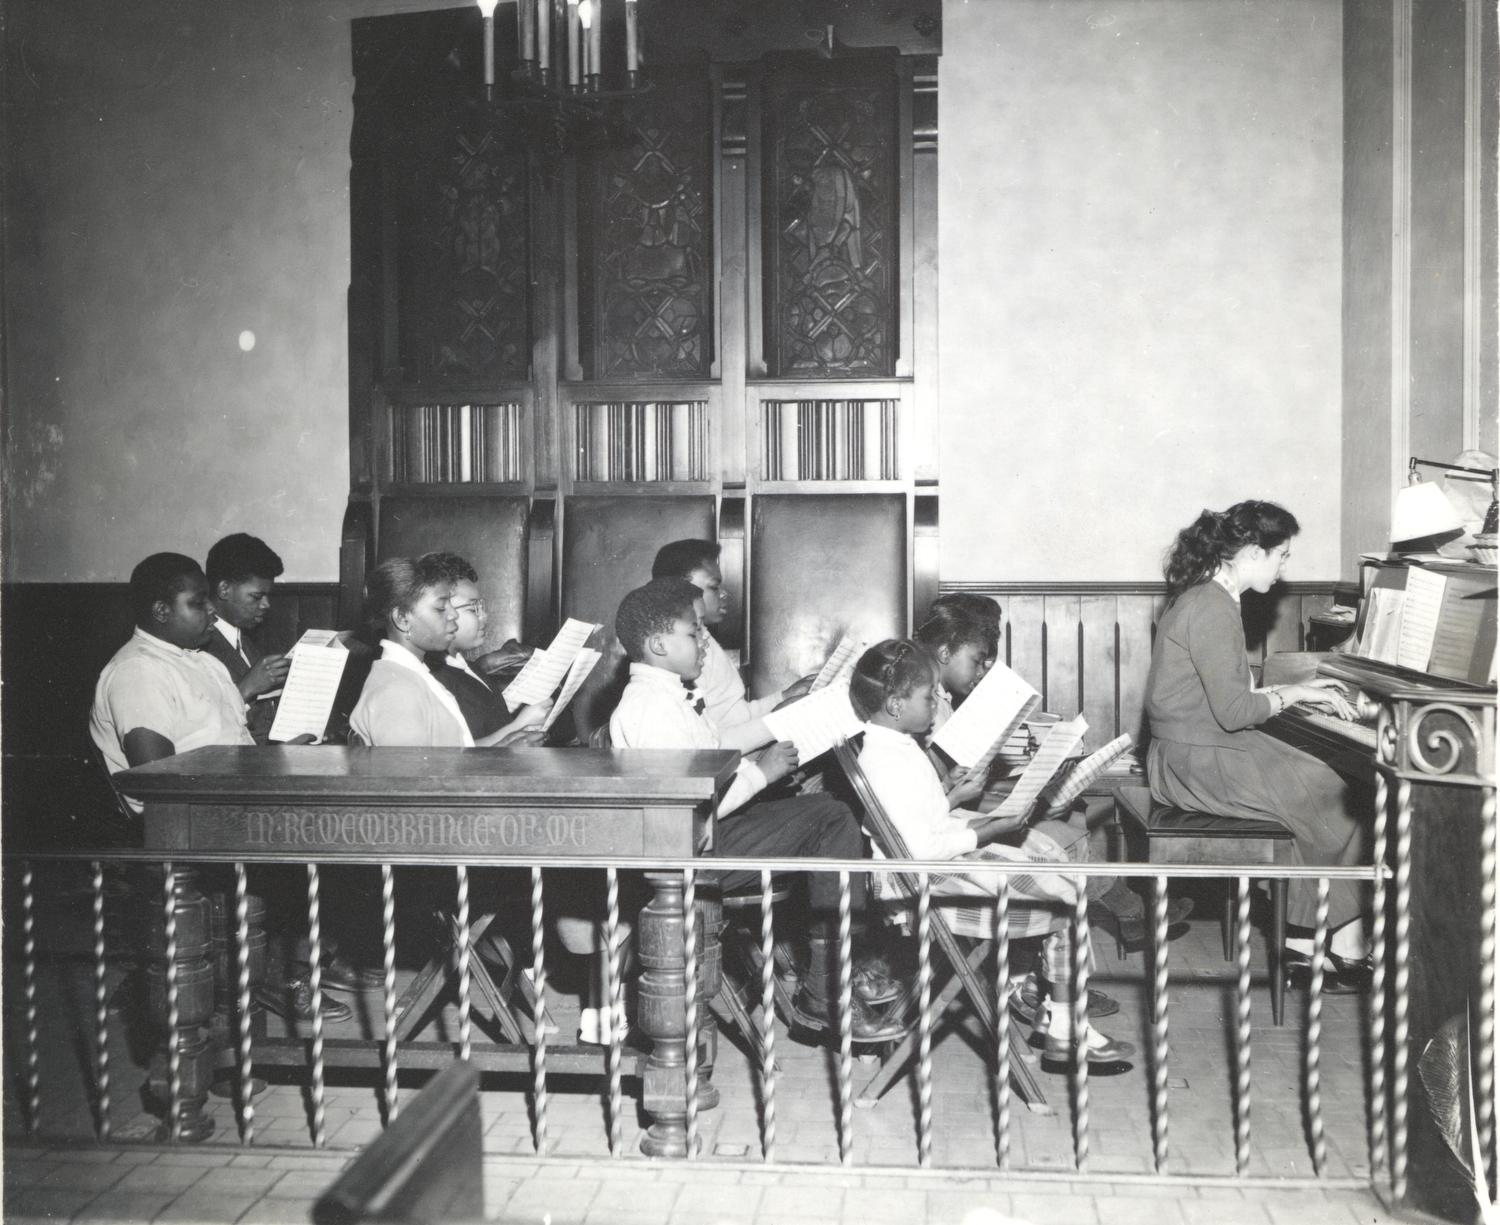 Children singing from sheet music with a woman playing piano